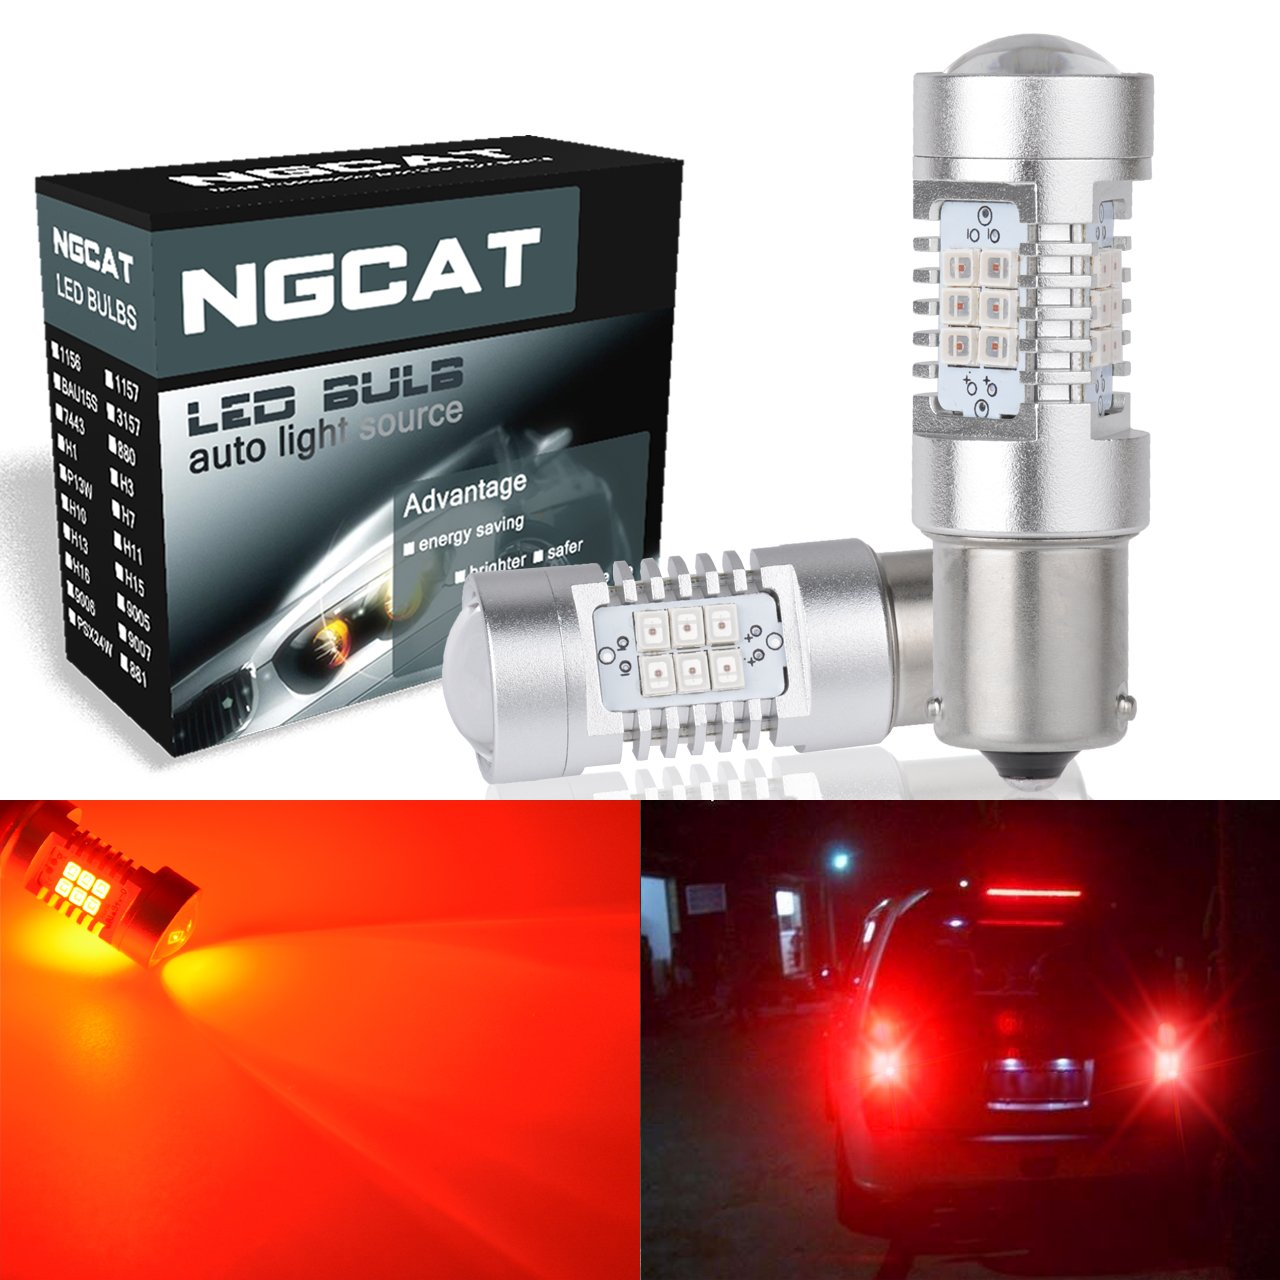 NGCAT Auto LED Bulb 2PCS 1156 BA15S 7056 1141 1073 1095 2835 21 SMD Chipsets LED Bulbs with Lens Projector Brake Turn Signal Tail Backup Reverse Lights, Red 10-16V 10.5W